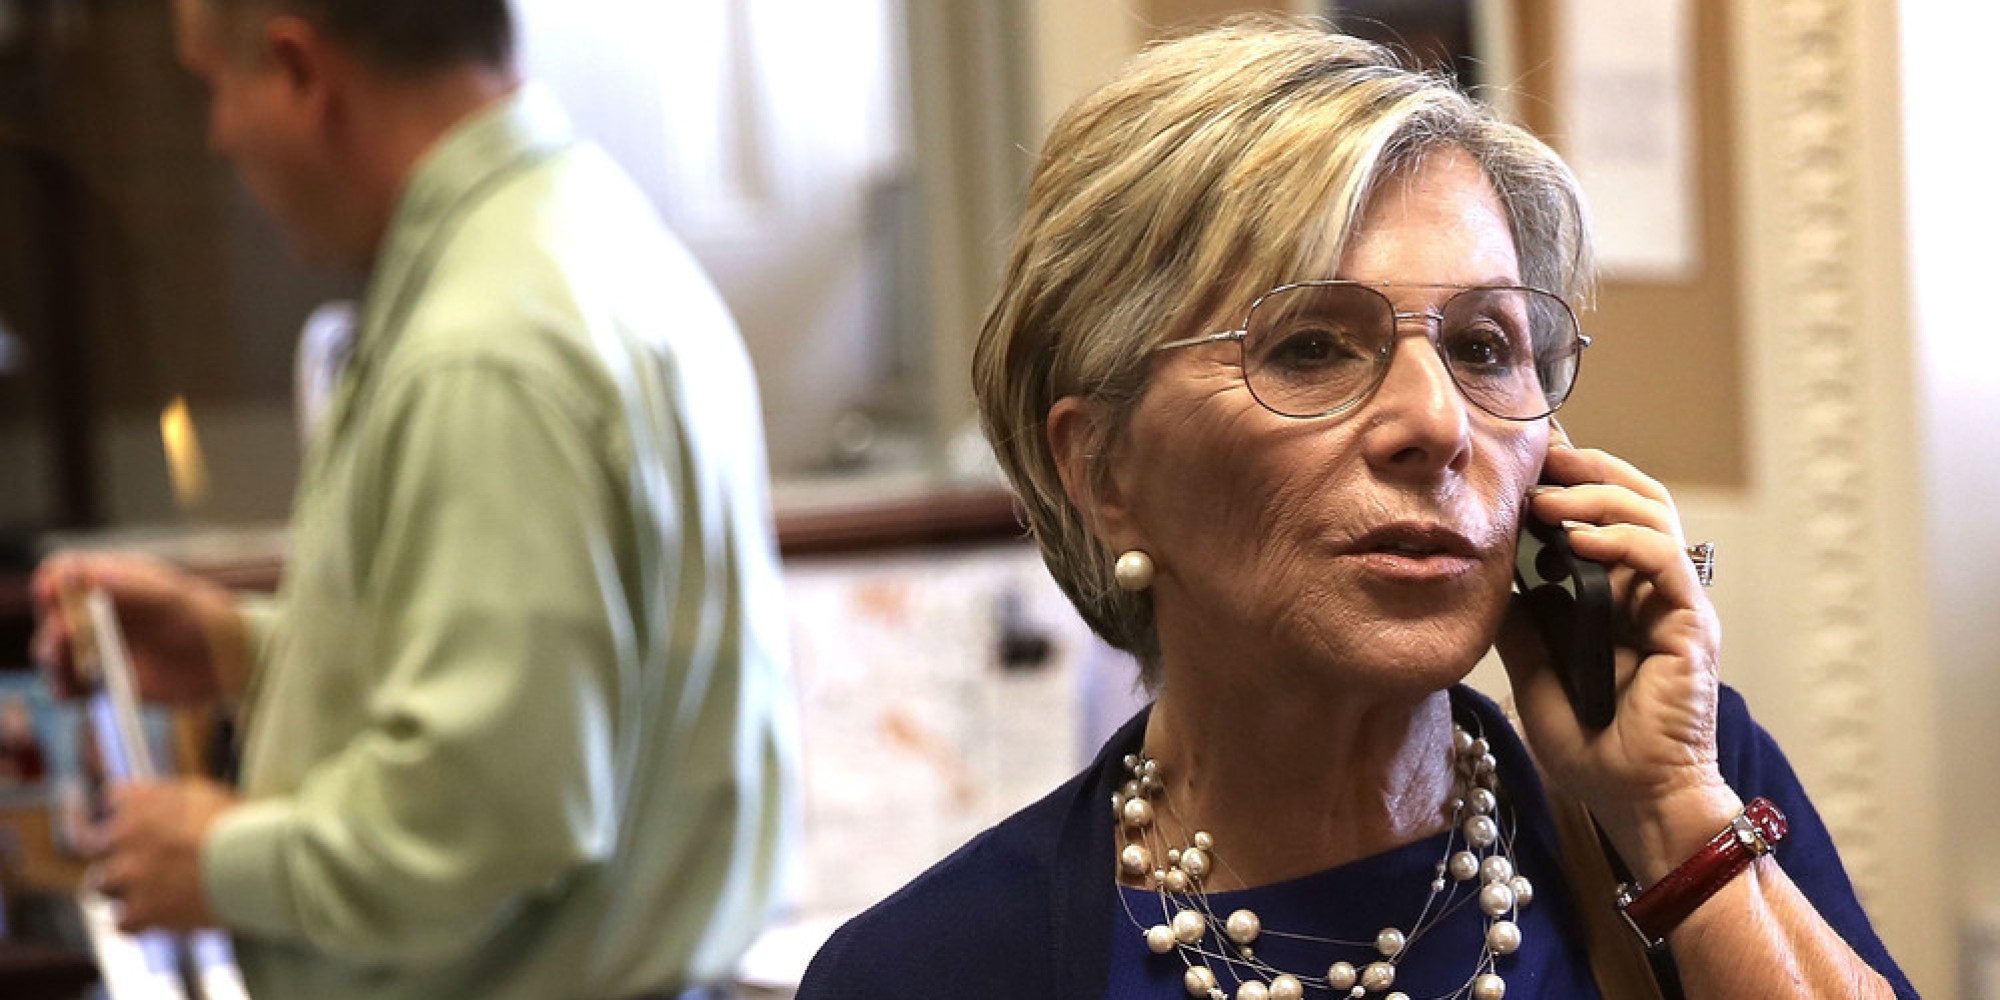 <b>Barbara Boxer</b> Wants Her Nuclear Regulatory Records And She Wants Them Now - o-BARBARA-BOXER-facebook